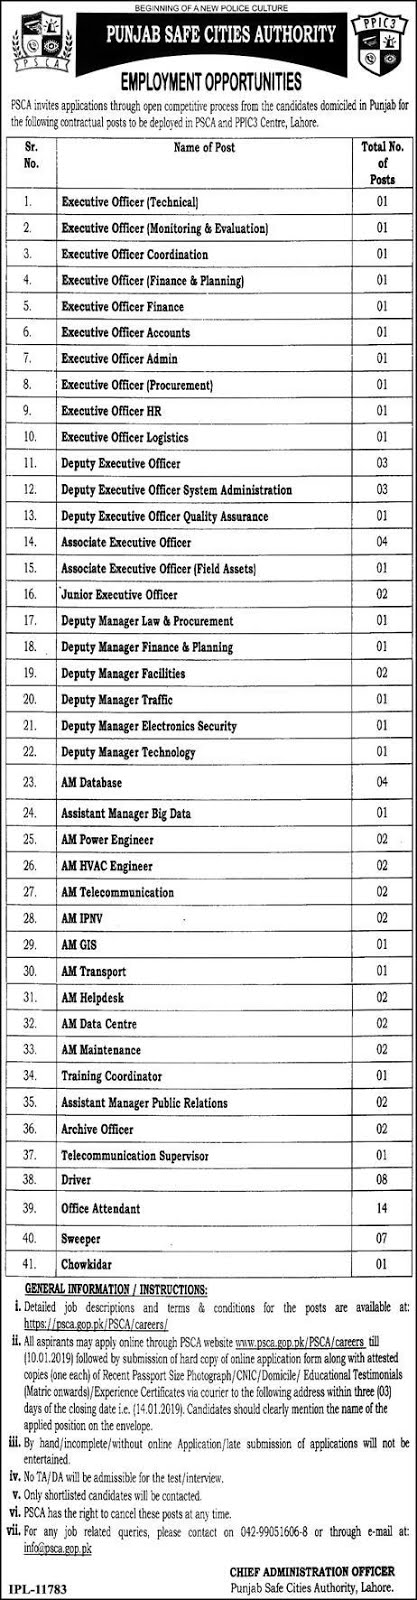 punjab safe cities authority jobs,punjab safe city authority jobs 2018-19,punjab safe city authority jobs 2018,punjab safe city authority jobs 2019,punjab safe city jobs 2018,punjab safe city authority online apply,safe cities authority jobs,punjab safe cities authority (psca) jobs 2019,safe city project jobs 2018,punjab police jobs,punjab safe cities authority (psca) jobs 2018